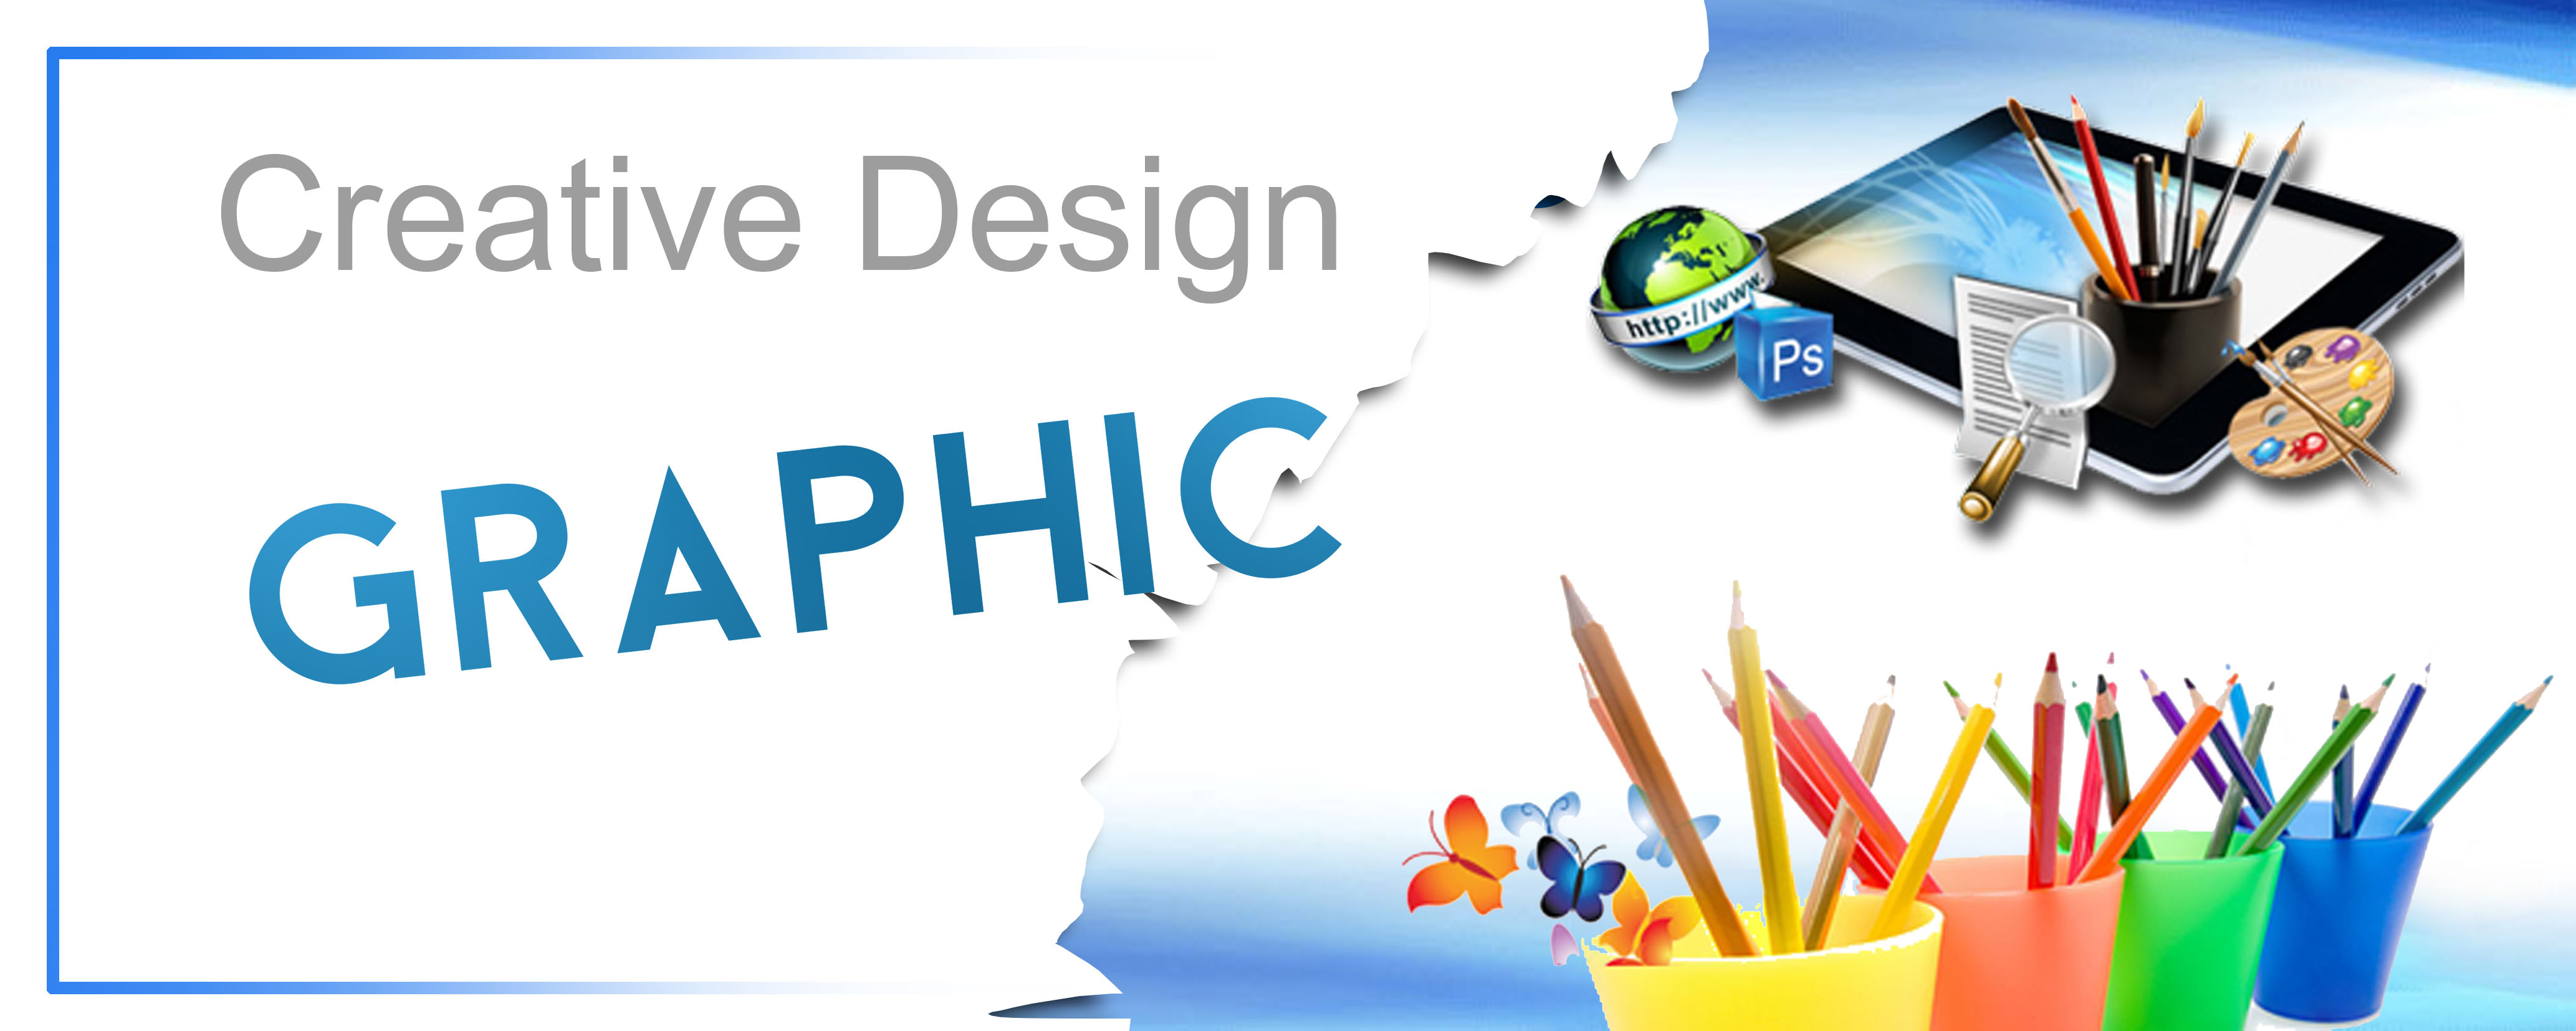 Graphic Design: Design A Professional HQ LOGO And A Banner For All Graphic